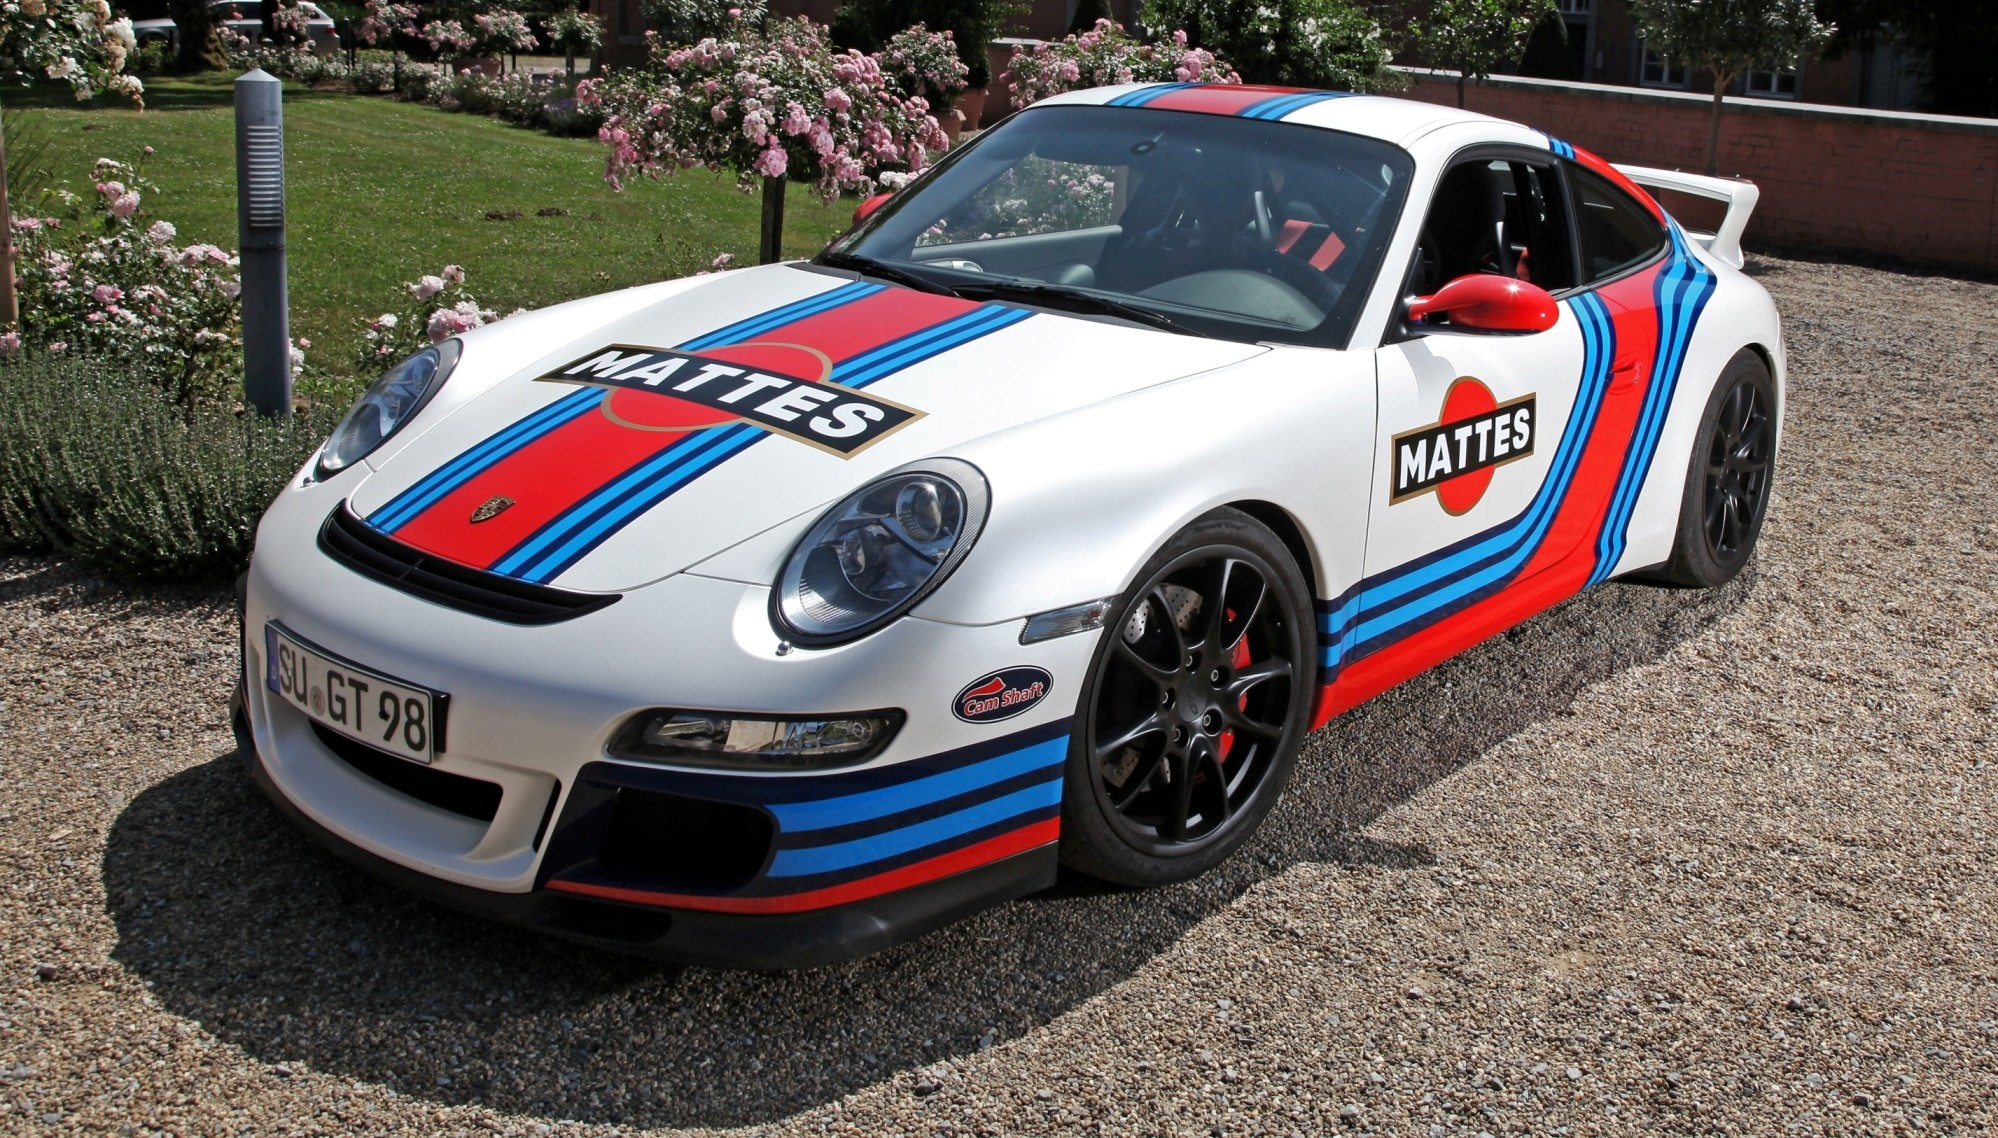 Martini Style Racing Livery By Cam Shaft For The Porsche